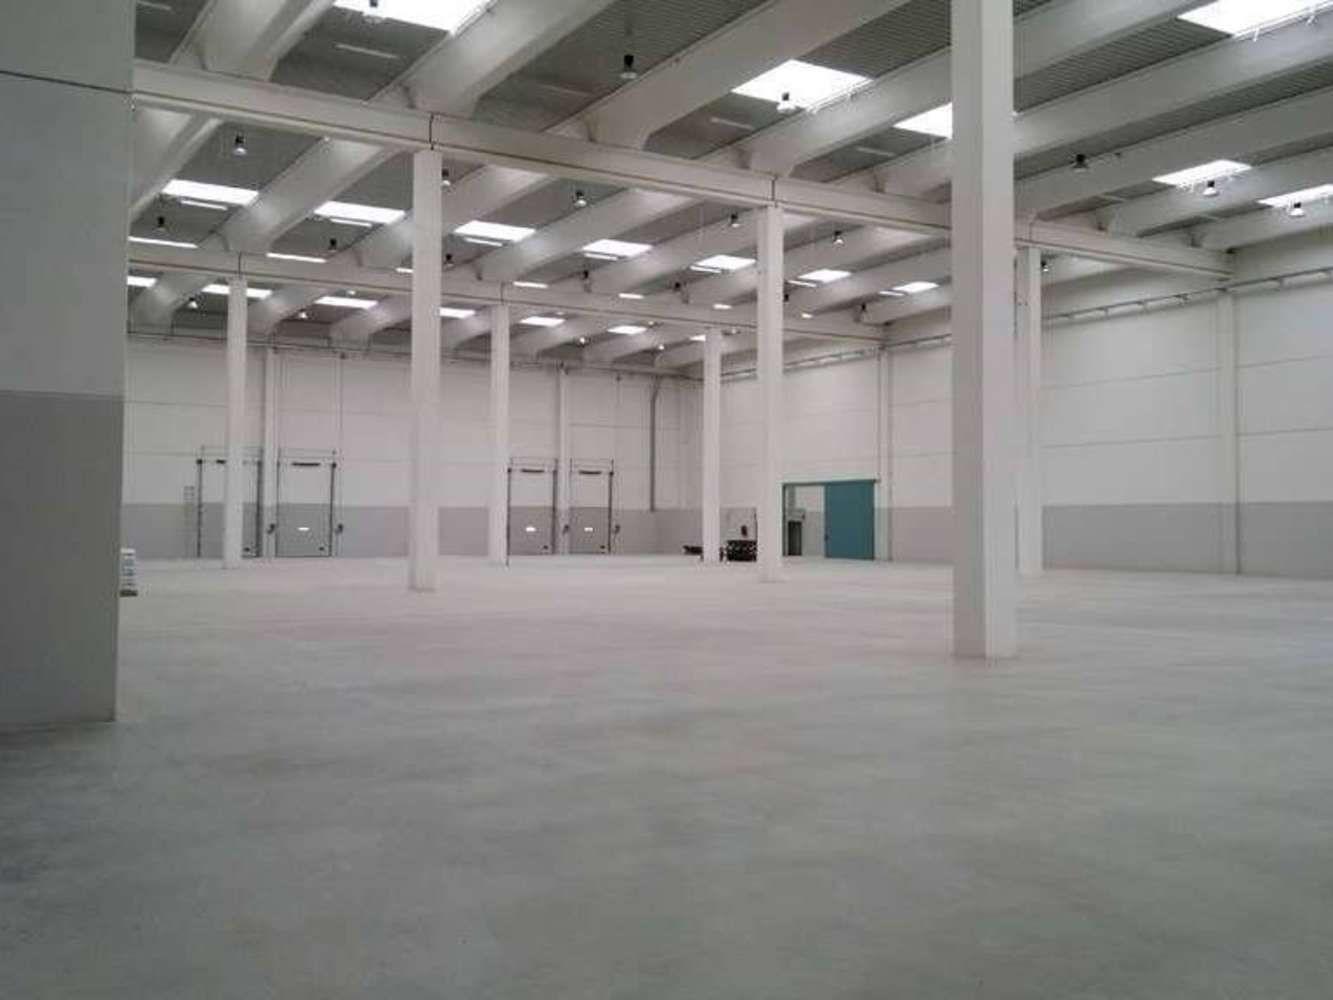 Magazzini industriali e logistici Codogno, 26845 - Codogno Warehouse